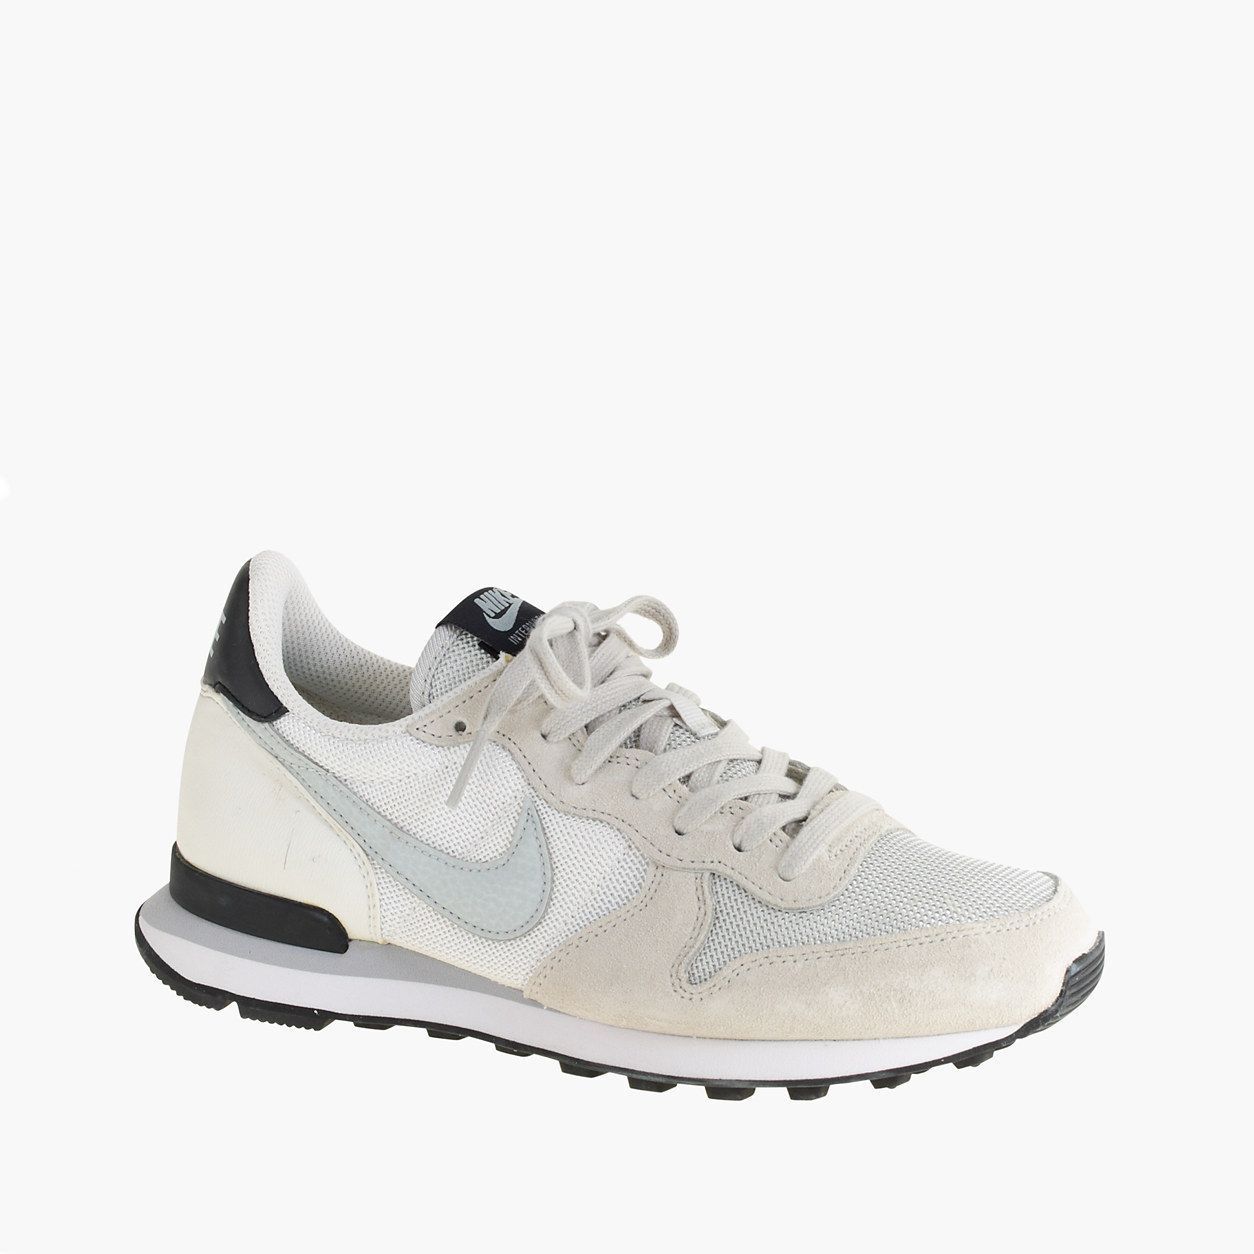 check out cafc1 dfac2 J.Crew Women s Nike Internationalist Mid Sneakers